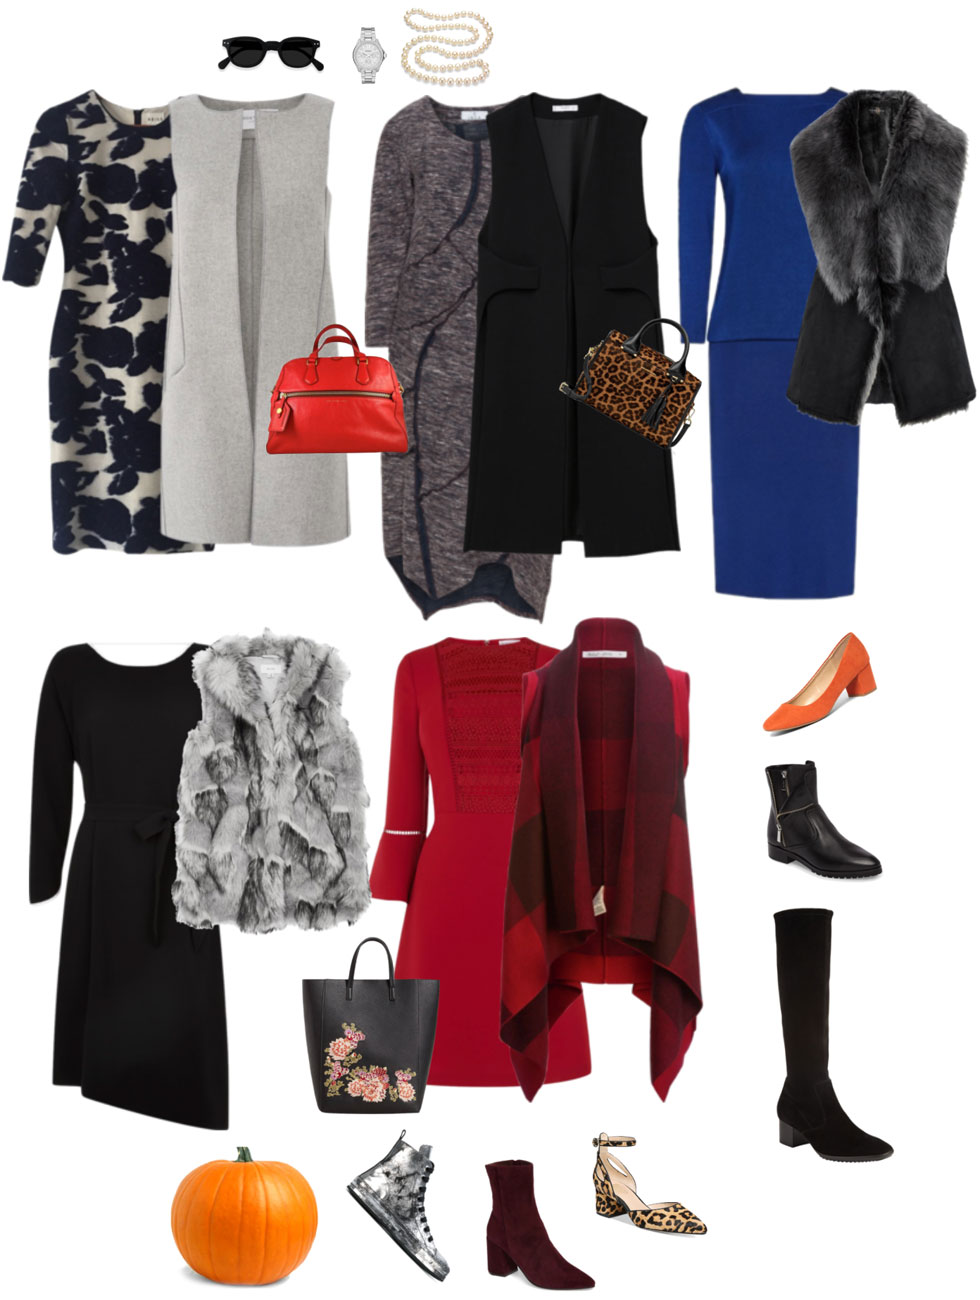 Ensemble: Fall Dress & Gilet